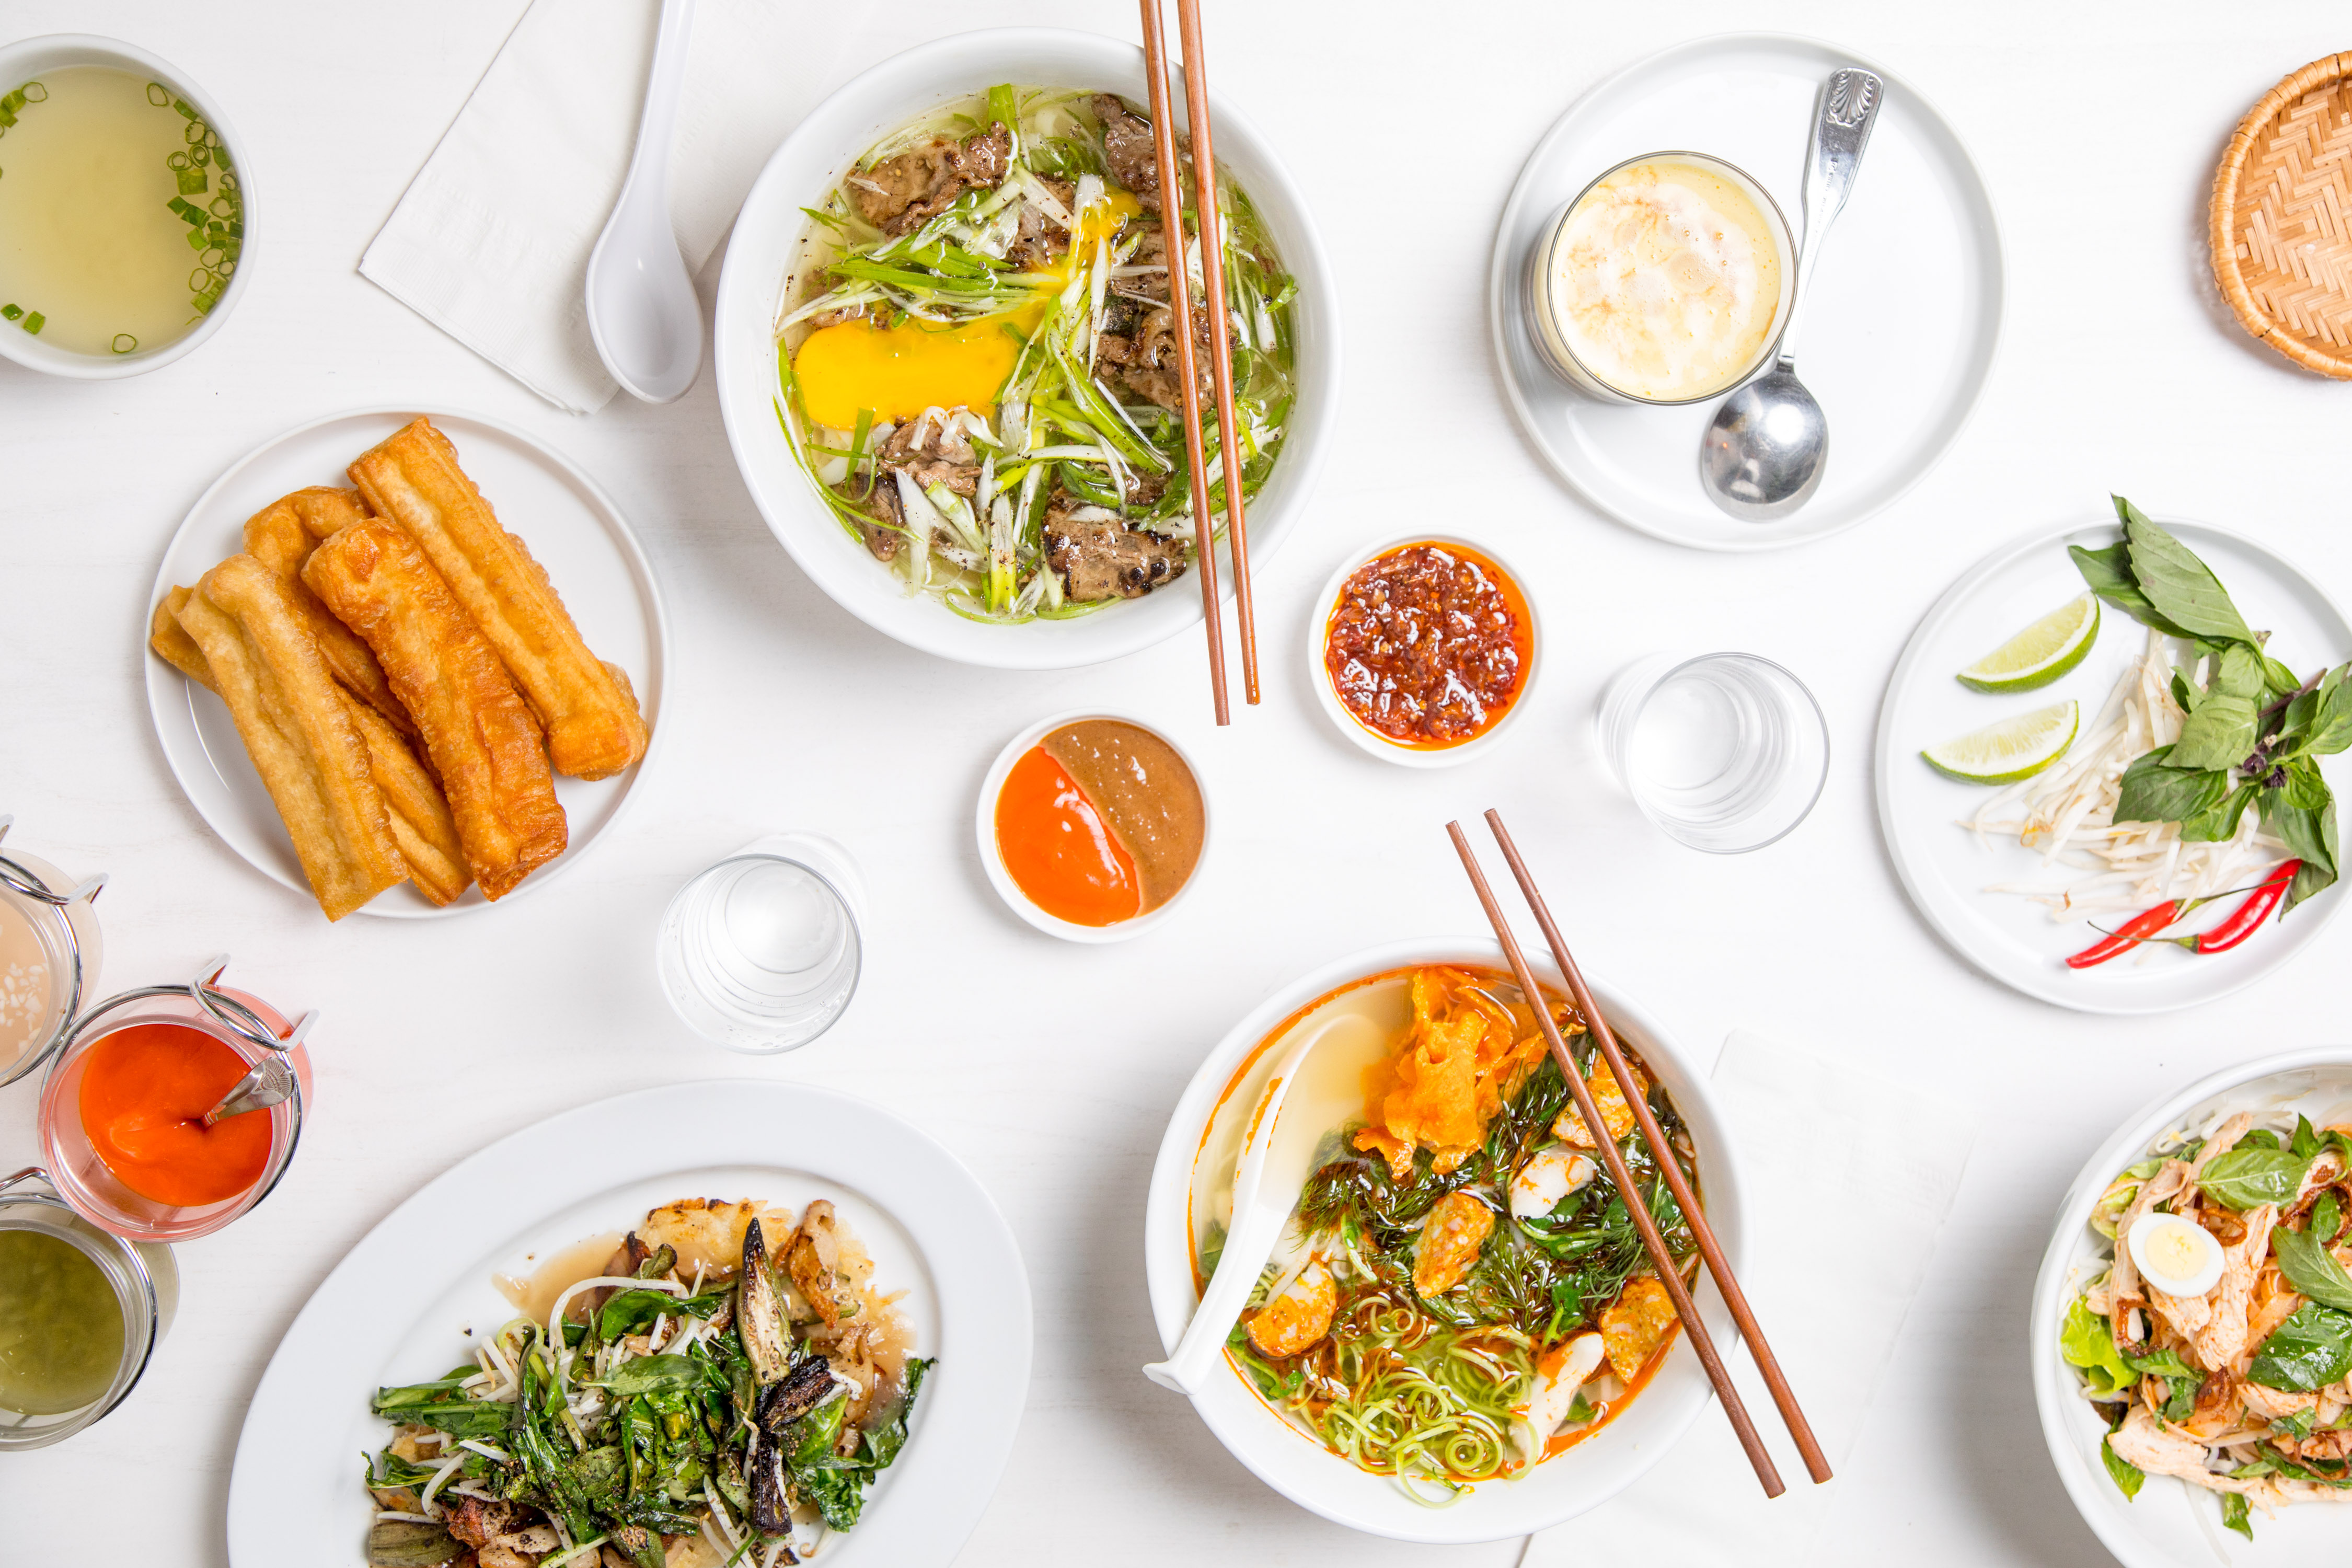 A spread of pho and other dishes at Di An Di